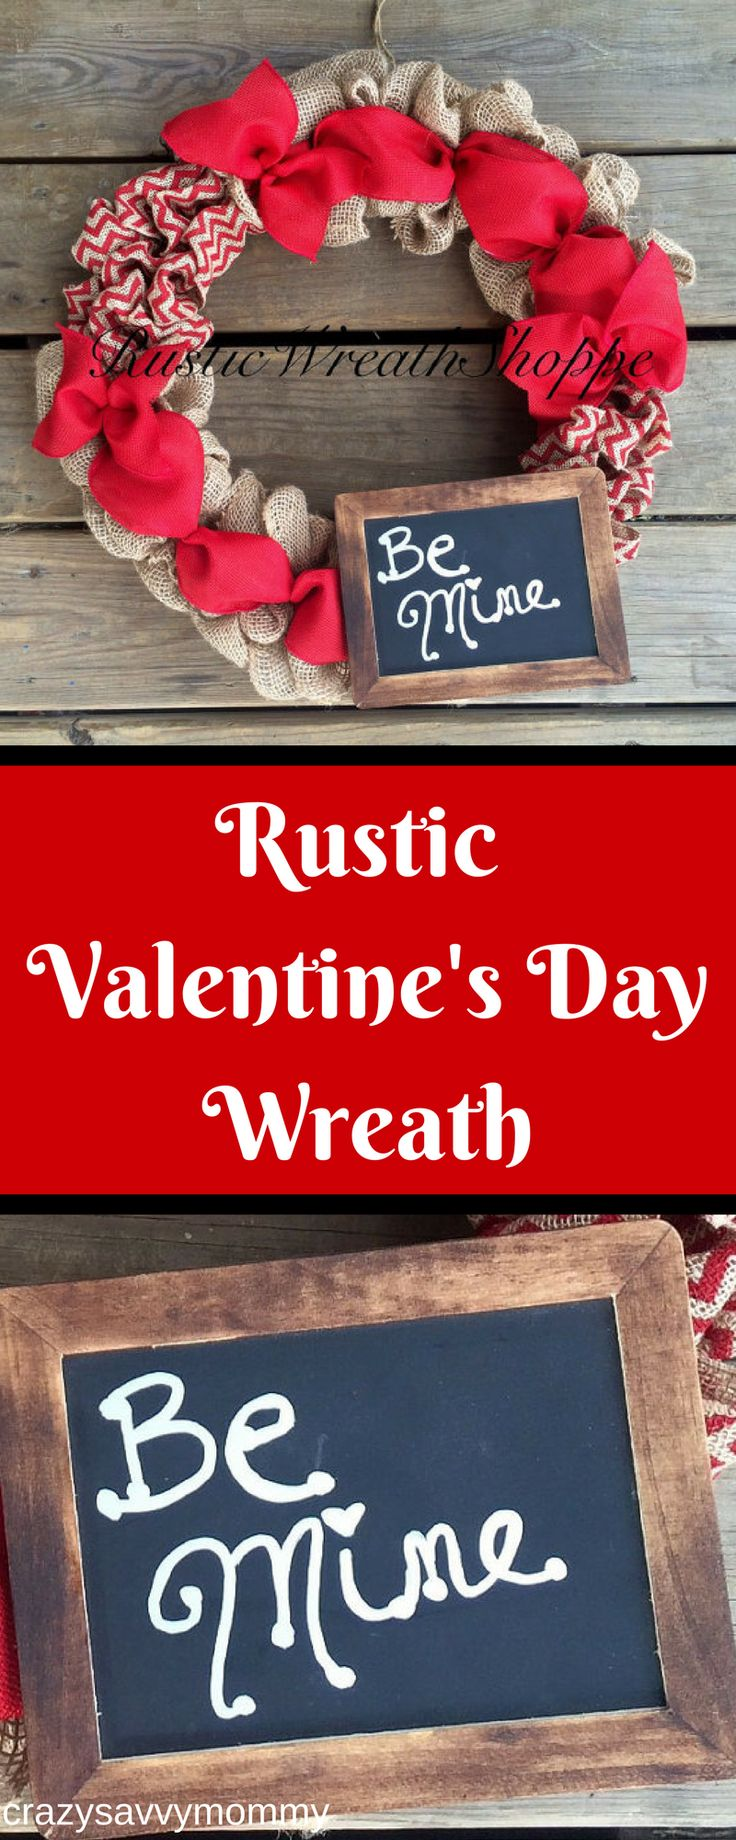 """PRETTY Rustic Valentine's Day Wreath. This wreath is made from natural burlap, red chevron burlap, and red ribbon. This wreath includes a hand stained and painted chalkboard with a """"permanent"""" handwritten """"Be Mine"""" message. DIY project ideas or click the link to get it NOW at Etsy.com! #valentinesdaycrafts #valentinesdayideas #valentinesideas #homedecor #rustichomedecor #ad"""